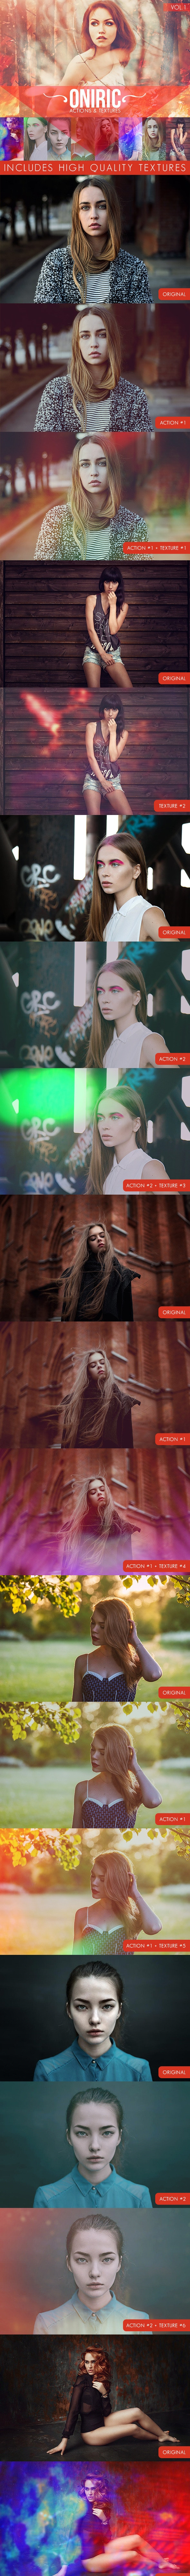 Oniric Actions and Textures Vol.1 - Photo Effects Actions